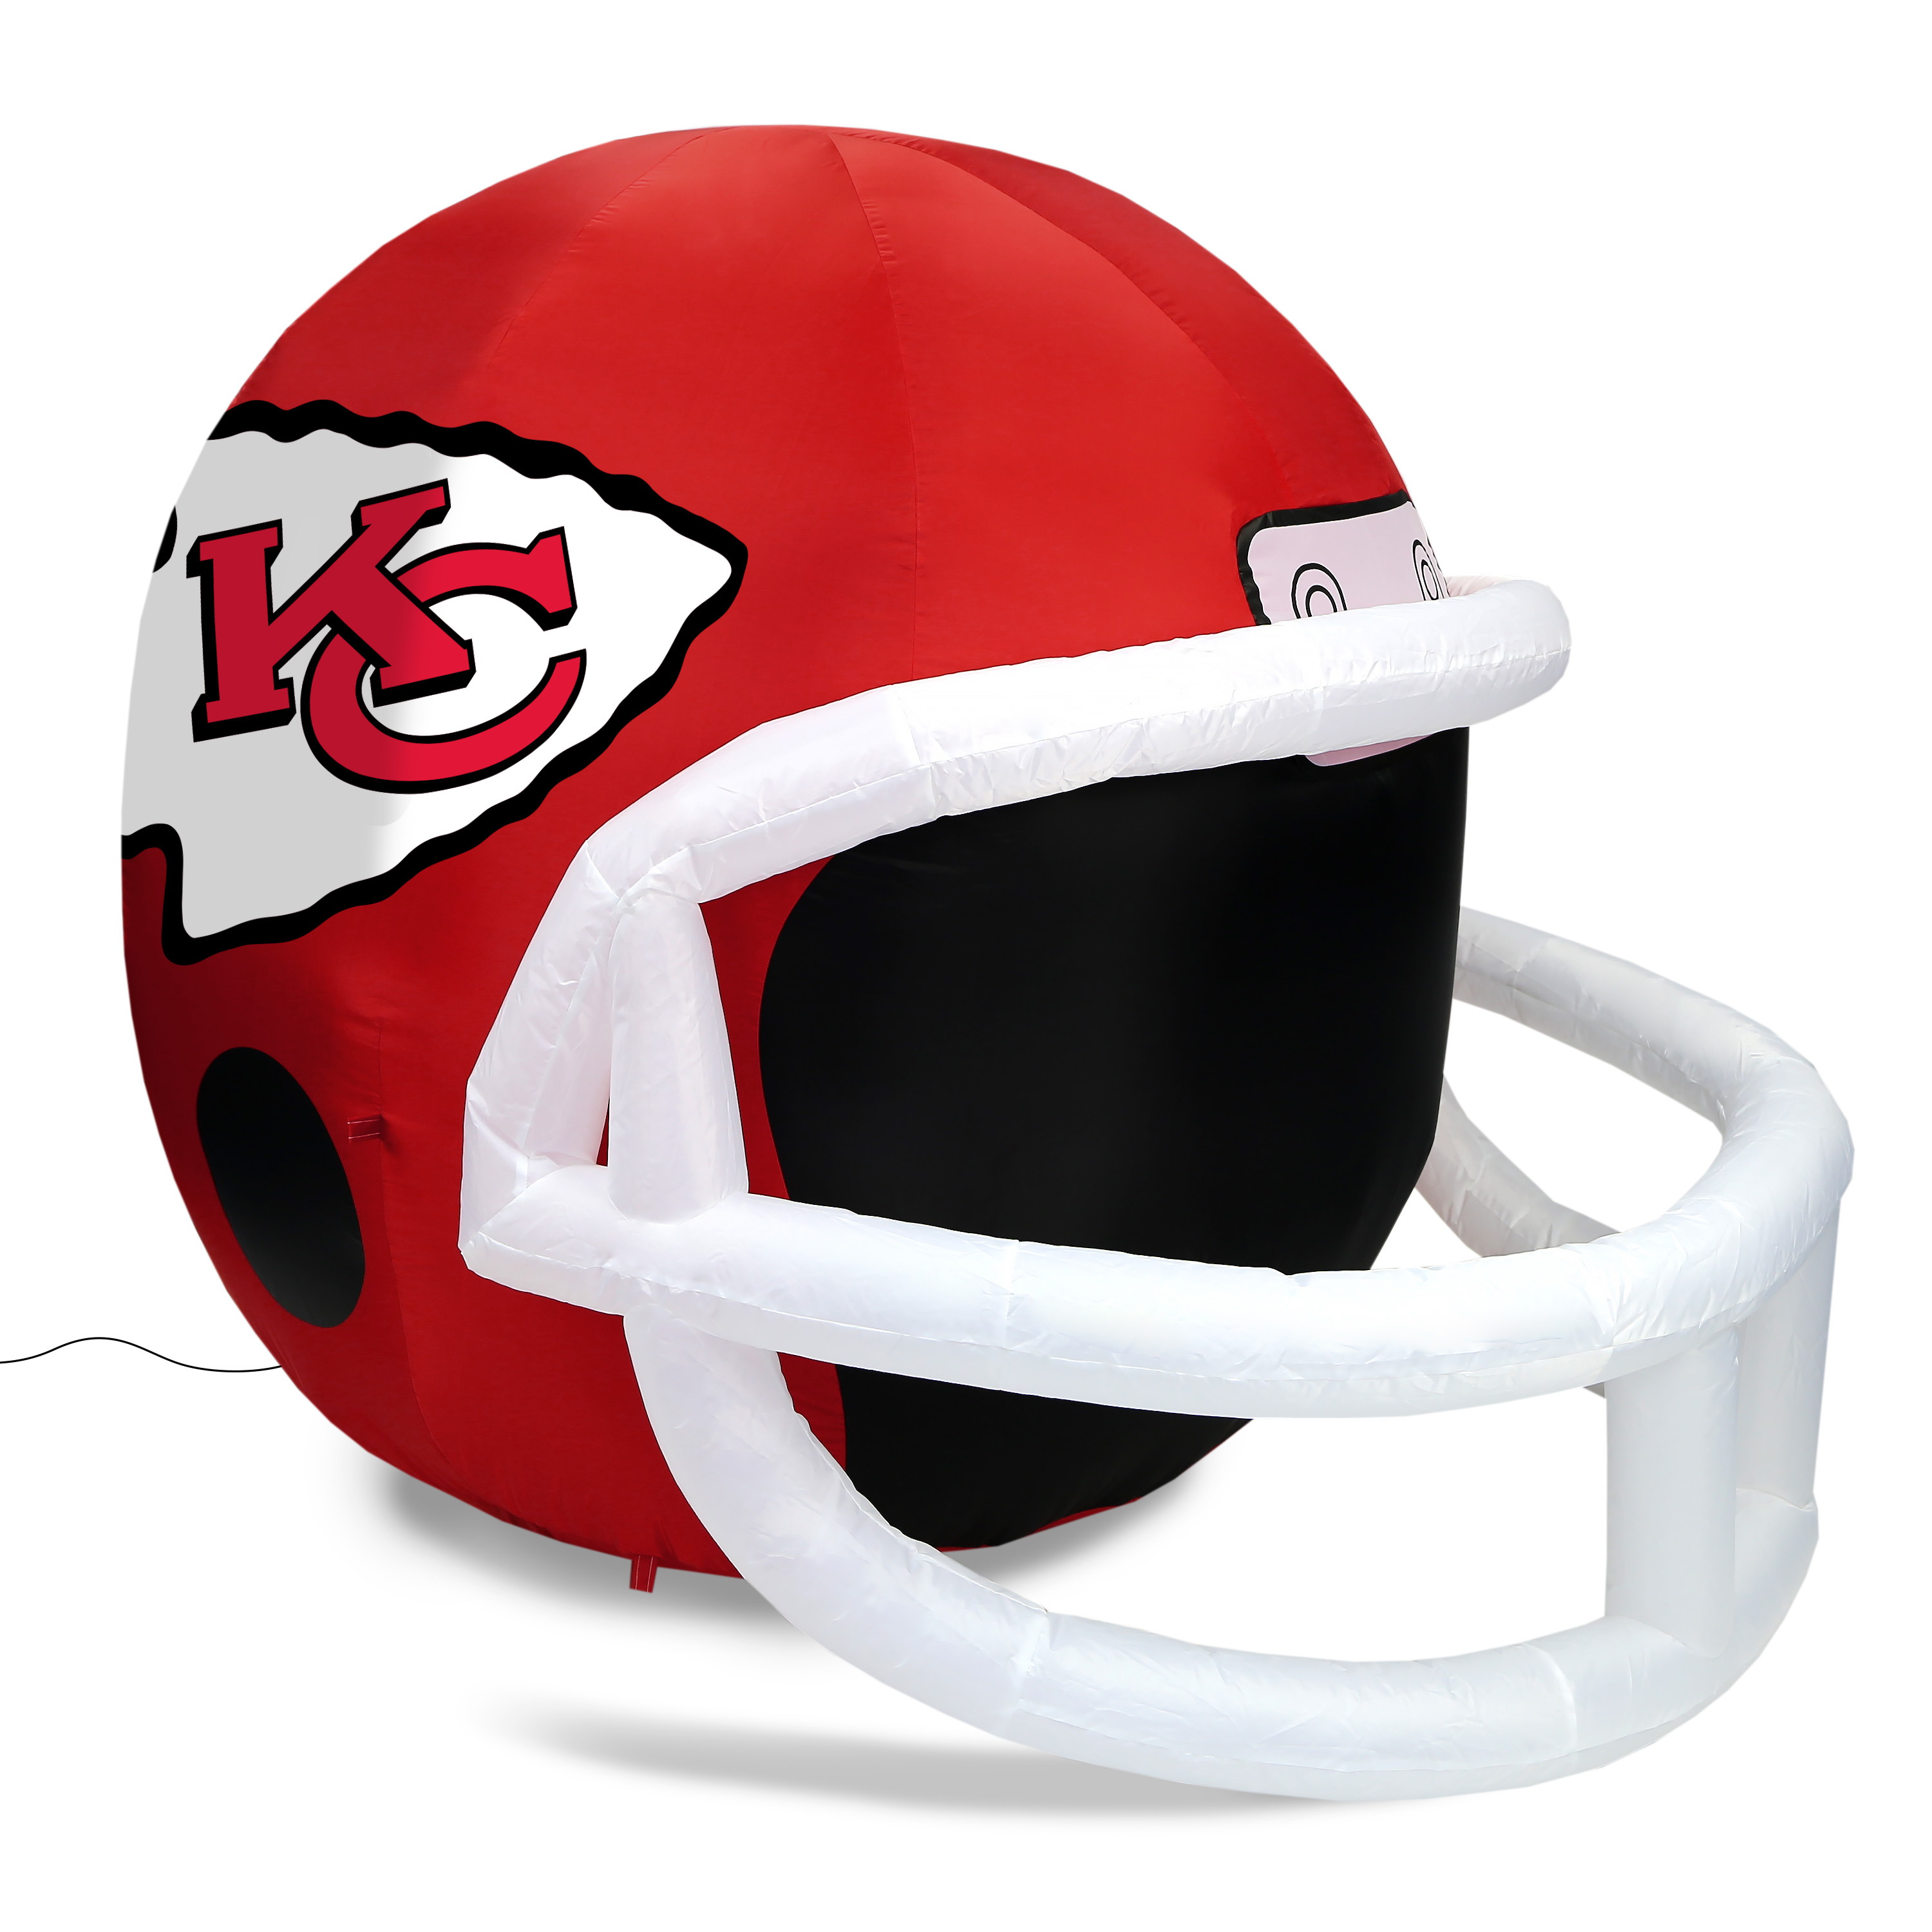 NFL Kansas City Chiefs Team Inflatable Lawn Helmet, Red, One Size